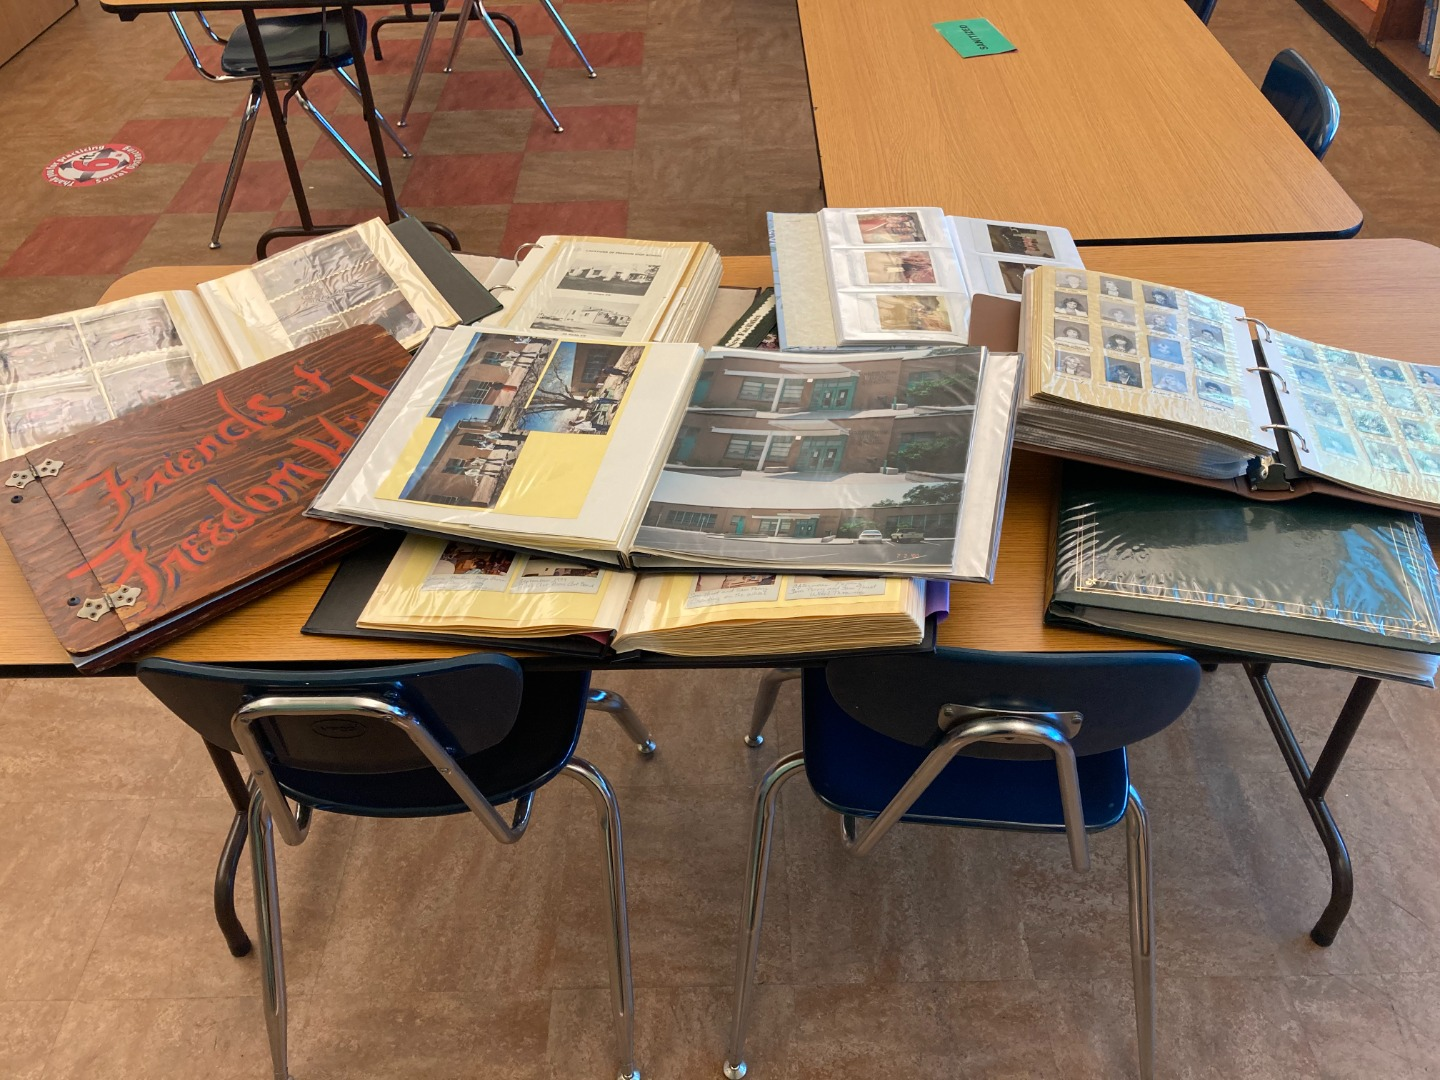 Sifting through 50 years of photo albums to investigate Freedom History